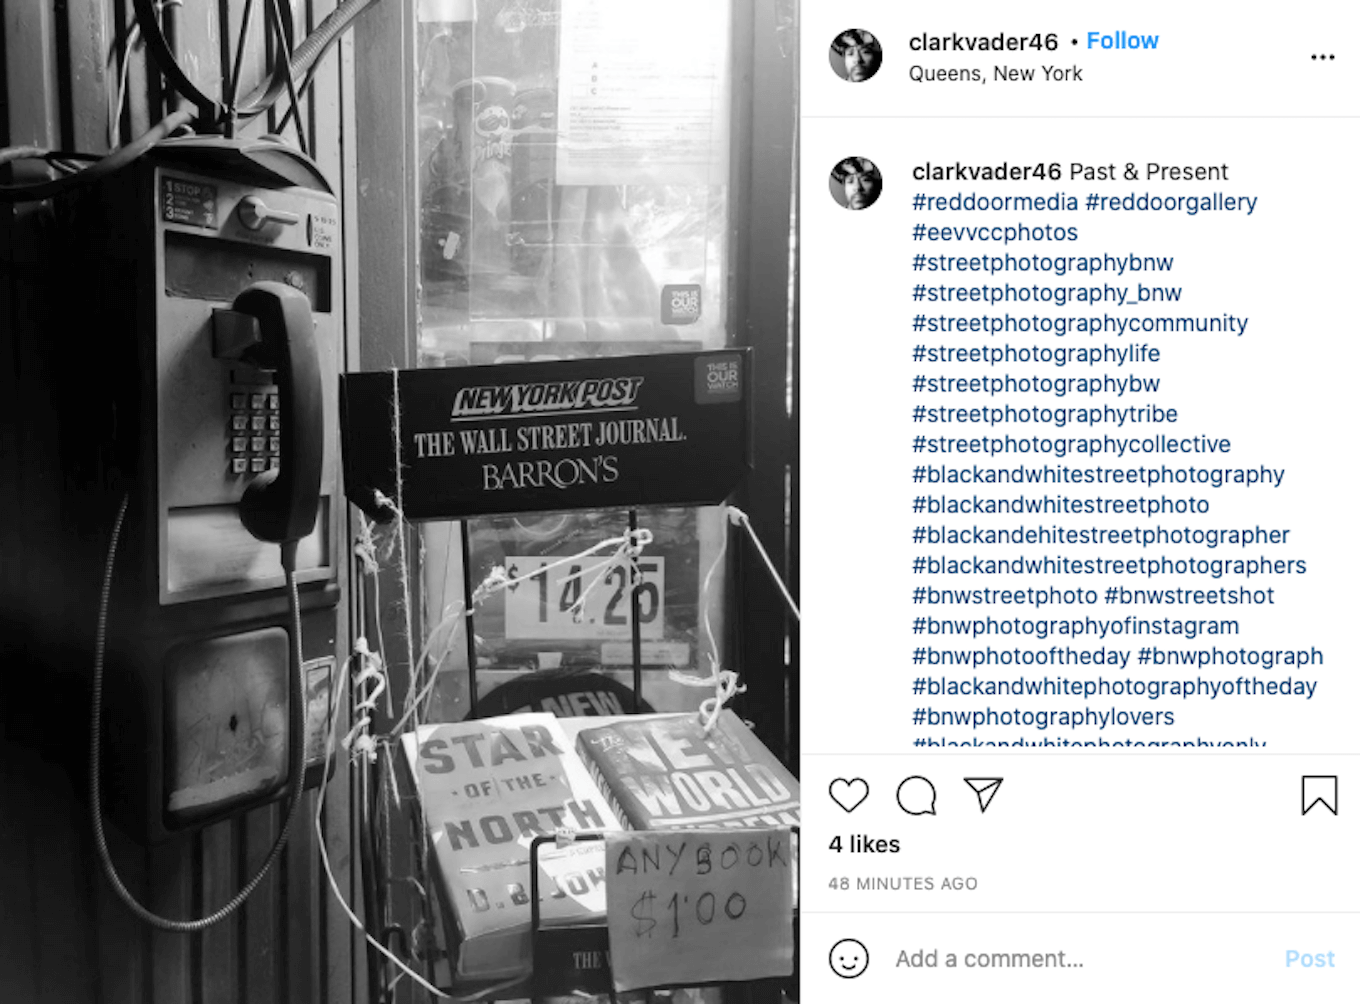 An Instagram screenshot featuring a black-and-white photo of a payphone next to books for sale.